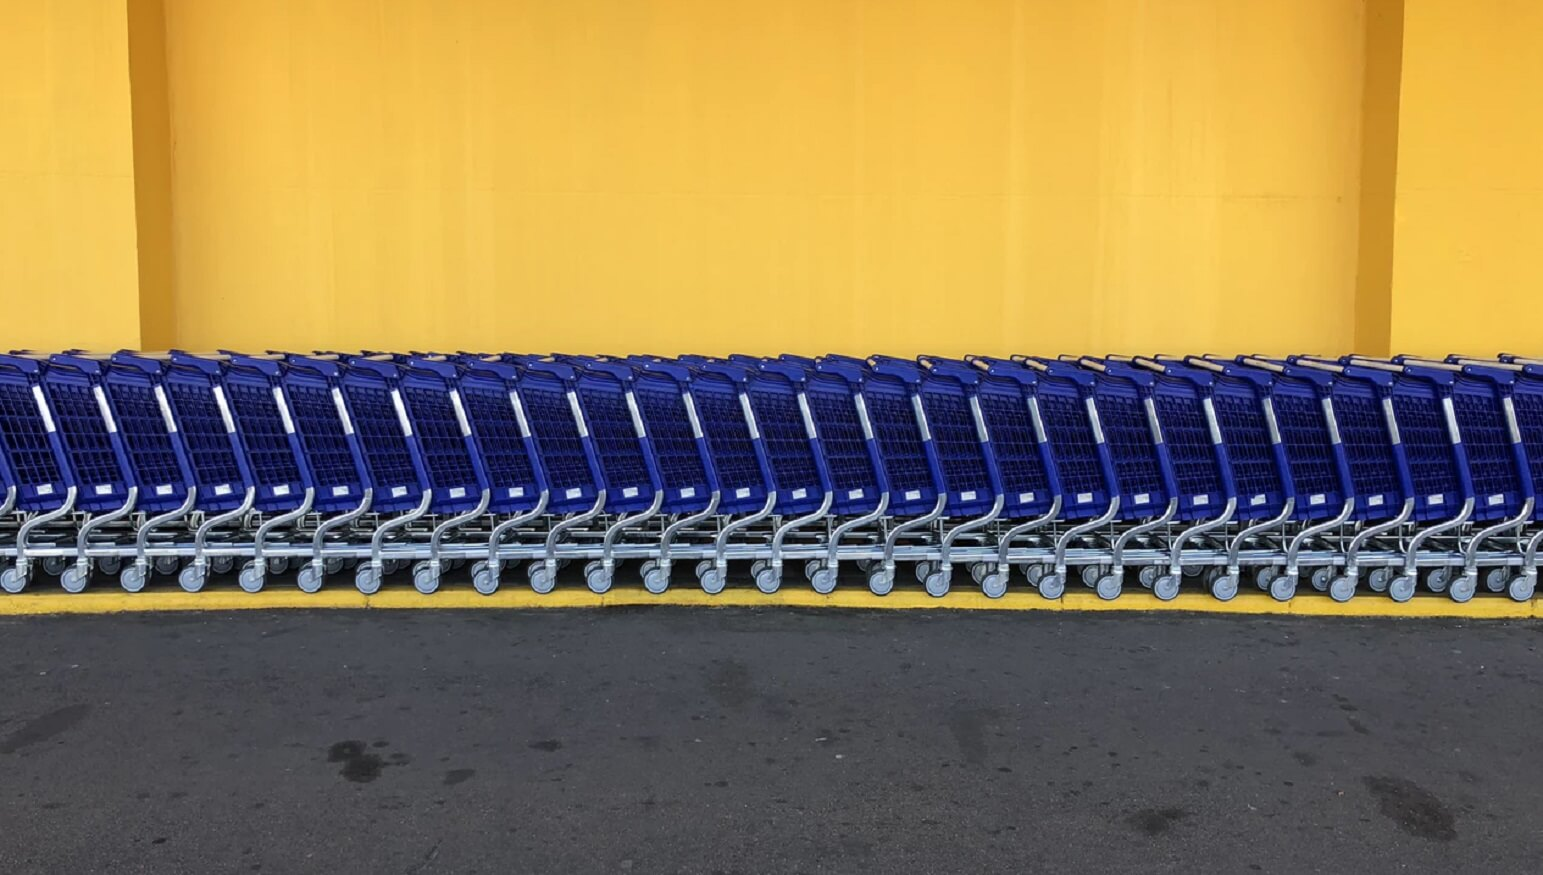 walmart shopping carts against yellow wall